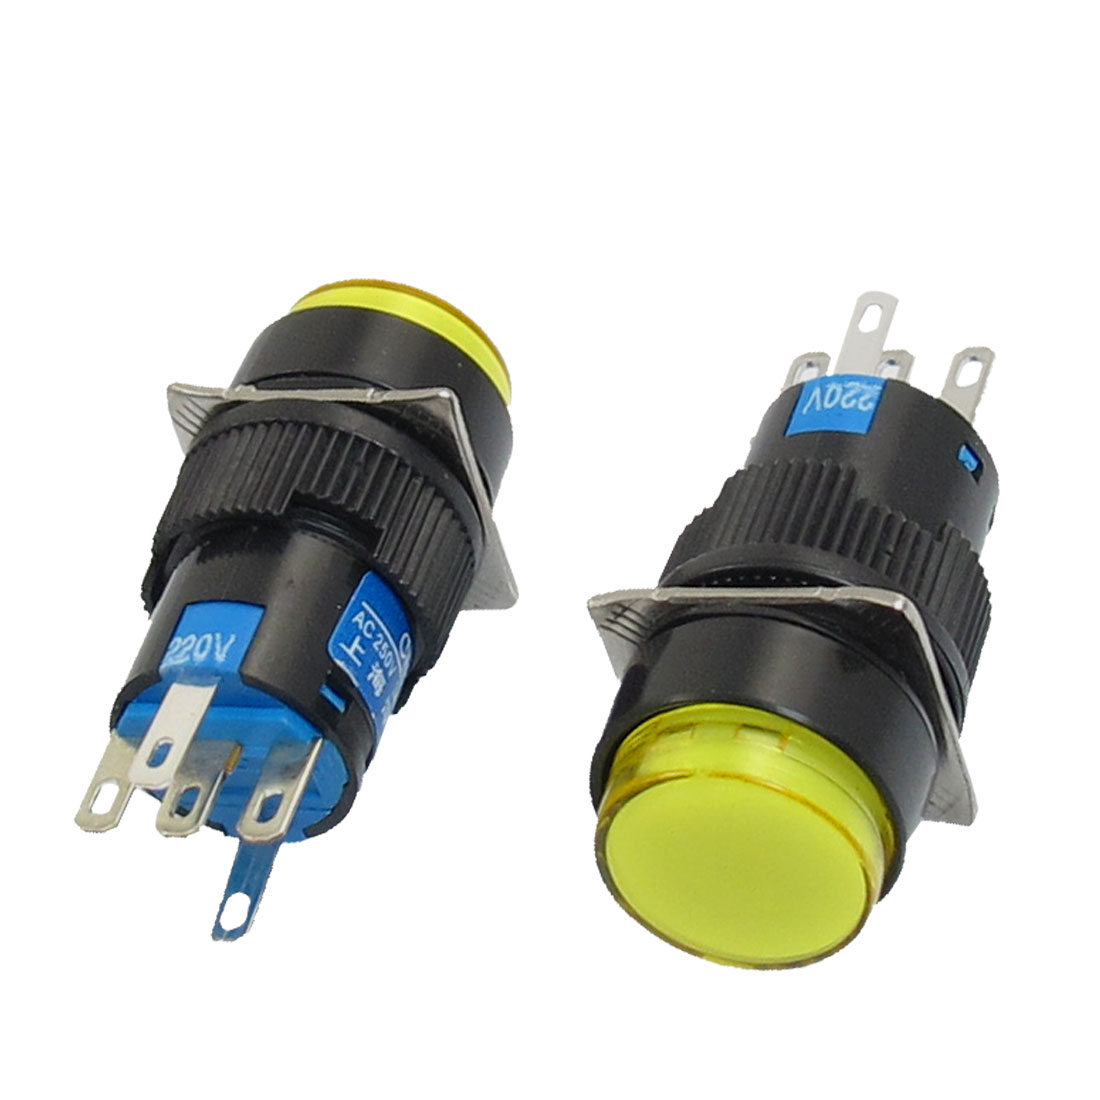 AC 220V Lamp SPDT Yellow Ignition Round Head Momentary Pushbutton Switch 2Pcs